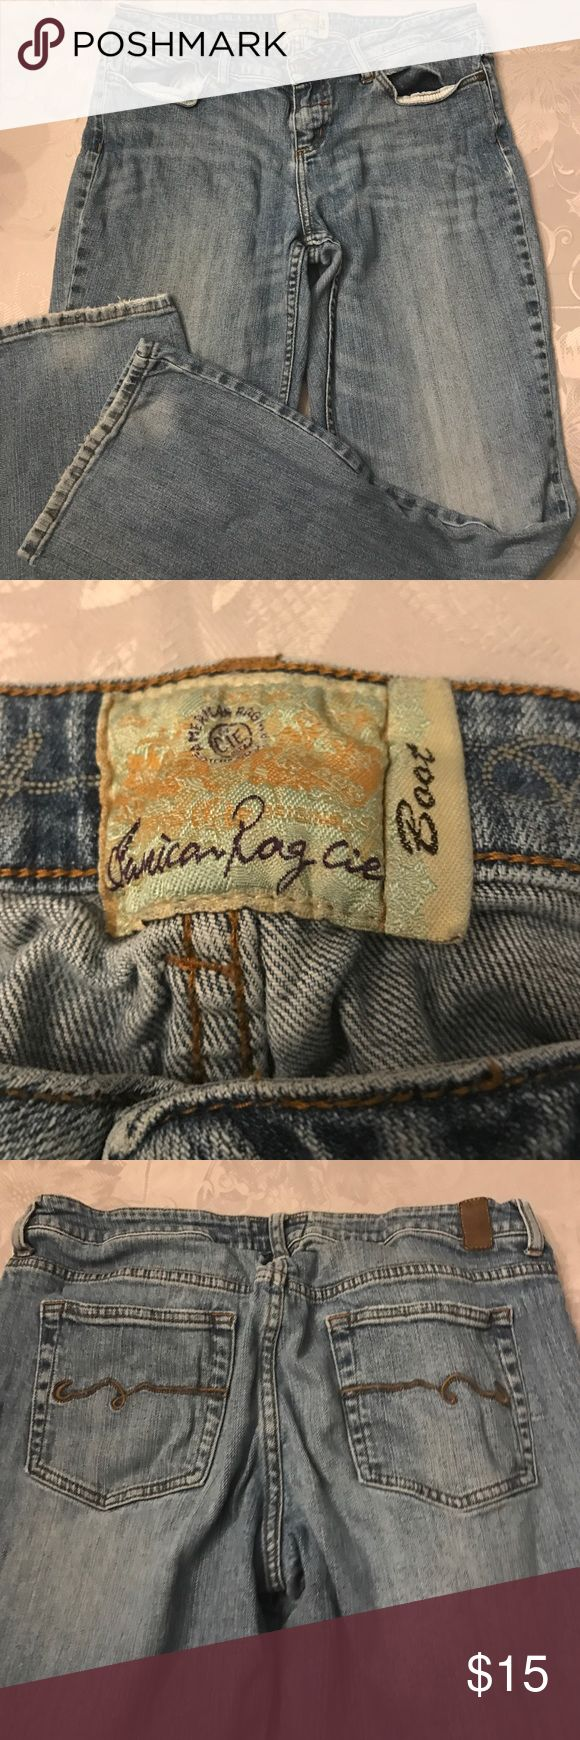 American Rag bootcut jeans. Good condition. Size 13 R. Light blue. American Rag Jeans Boot Cut